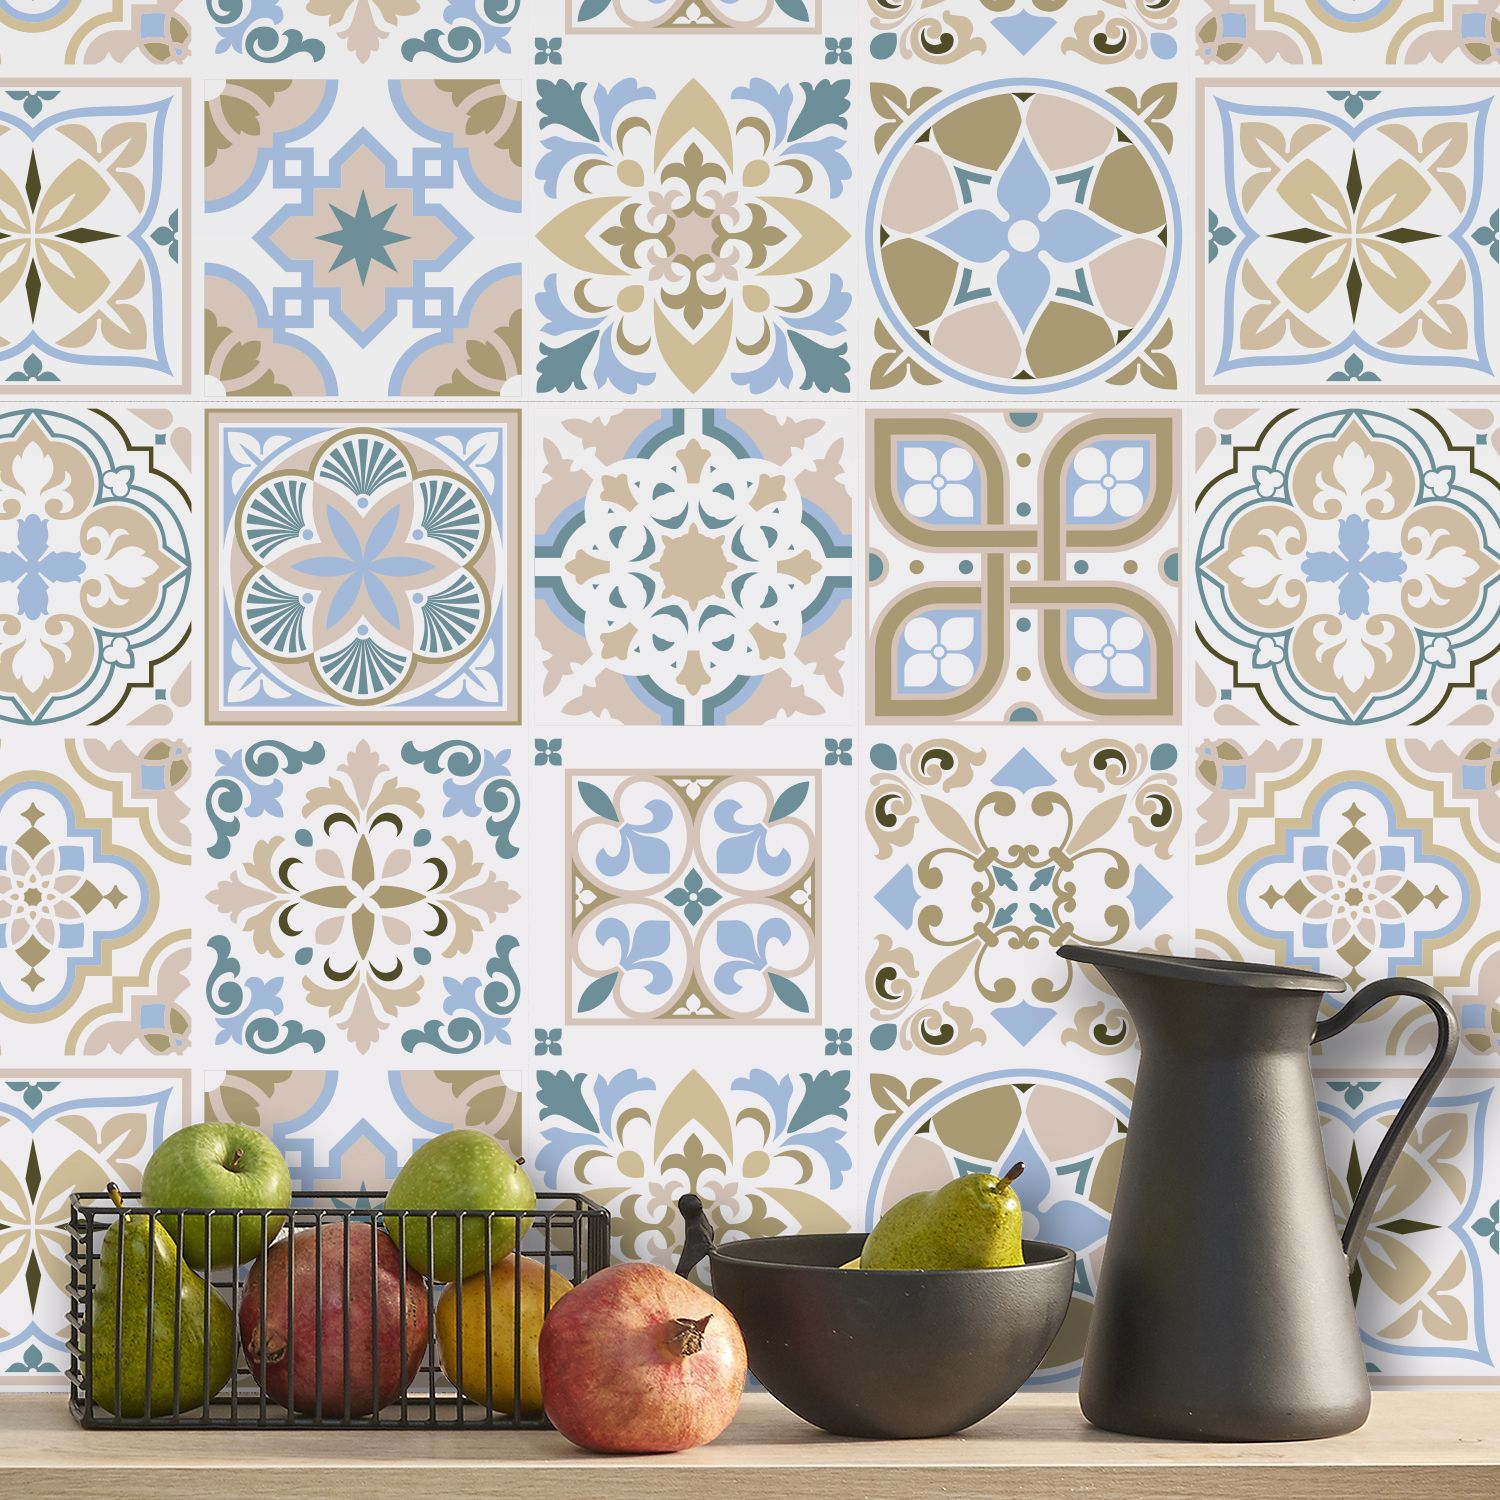 Light Sapphire and Parchment colour Traditional Spanish Tiles Wall Stickers - 15 x 15 cm (6 x 6 inches) - 24 pcs Wall Art, DIY Art, Home Decorations, Decals